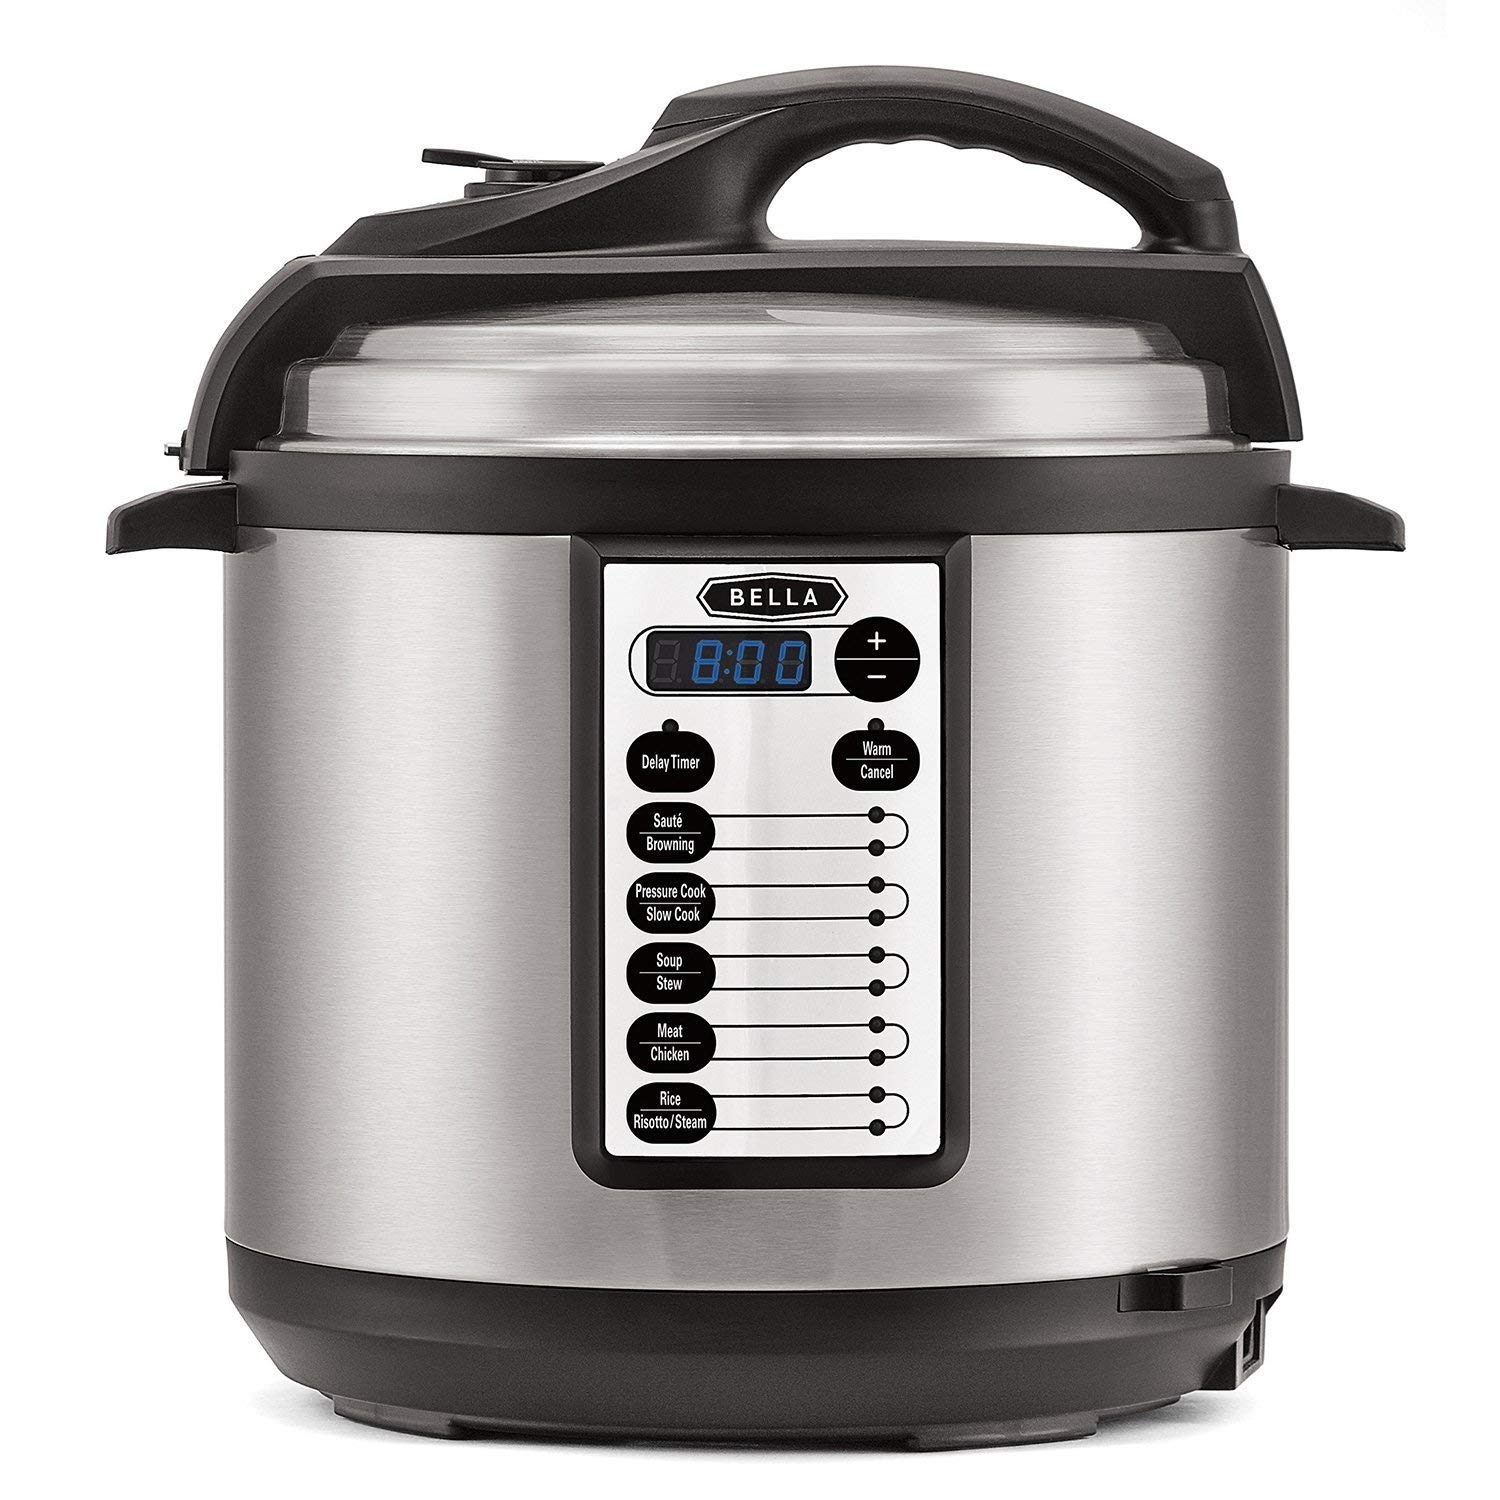 Bella 6-Quart Pressure Cooker - Black/Silver $39.99